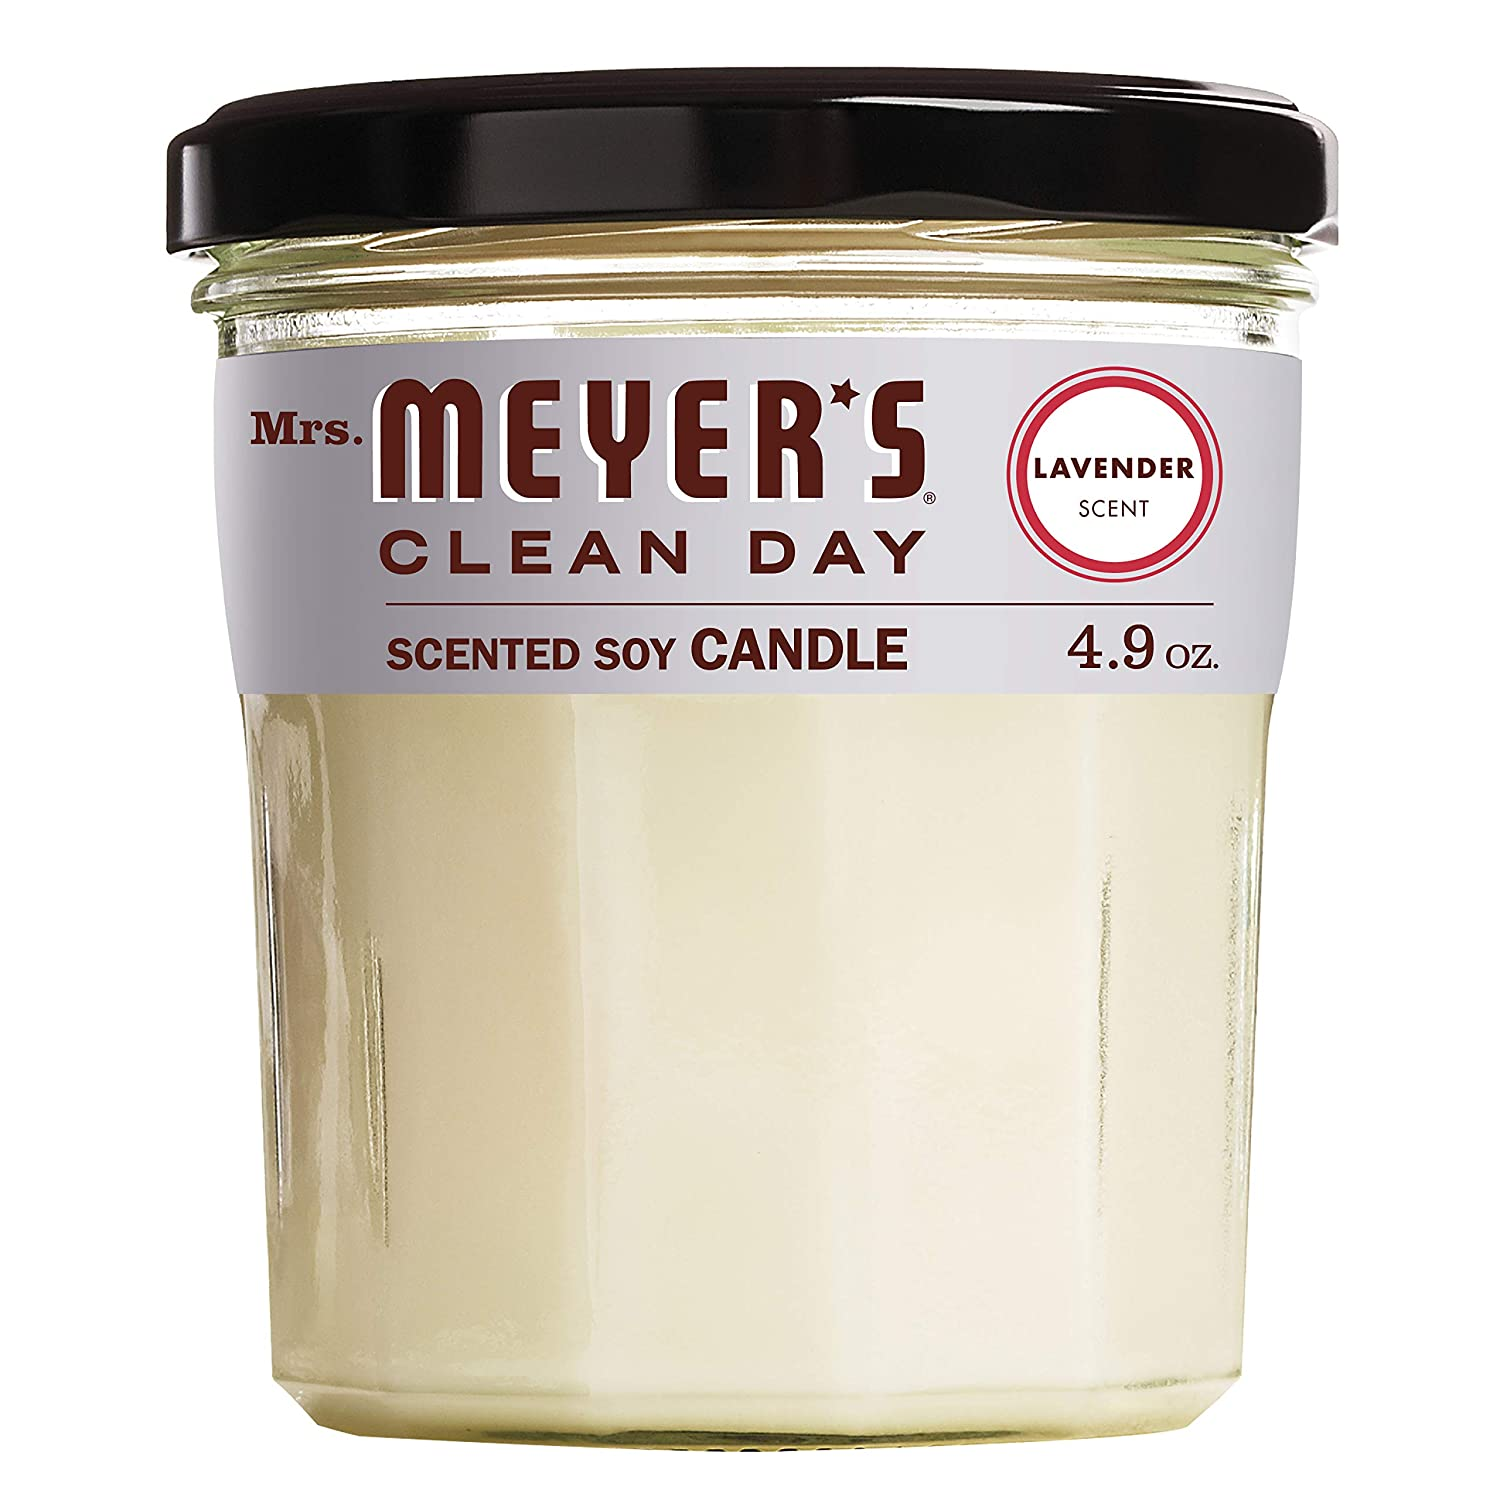 Mrs. Meyer's Clean Day Scented Soy Candle, Small Glass, Lavender, 4.9 oz